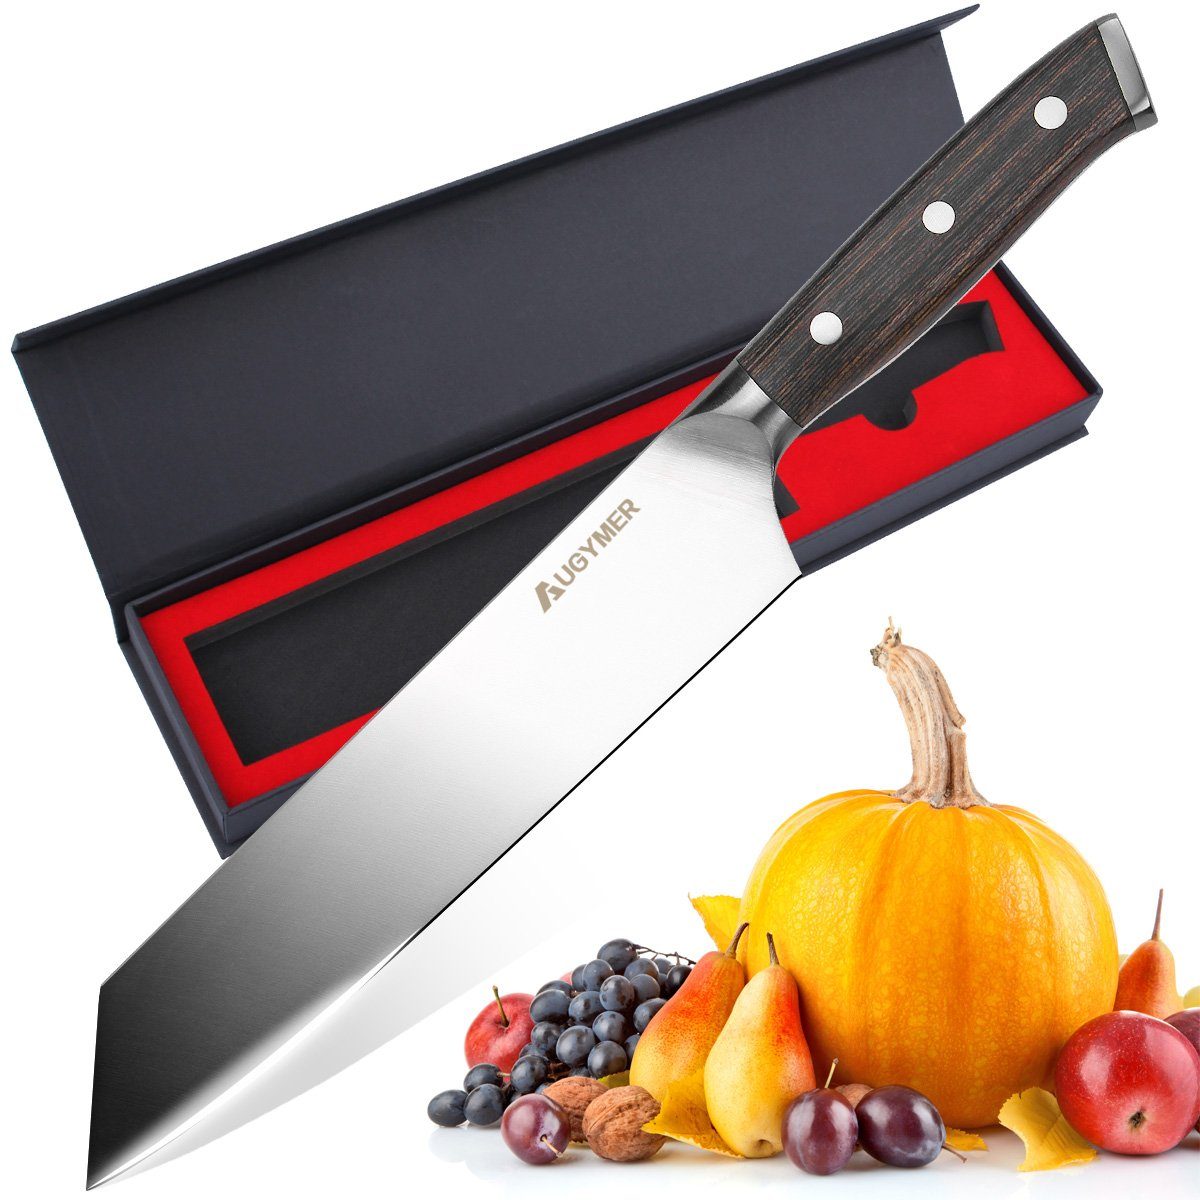 Chefs Knife, AUGYMER 8.5 Inch Professional Chef Knife German High Carbon Stainless Steel Full Tang Sharp Wood Handle Kitchen Knives with Gift Box (AUCK806)